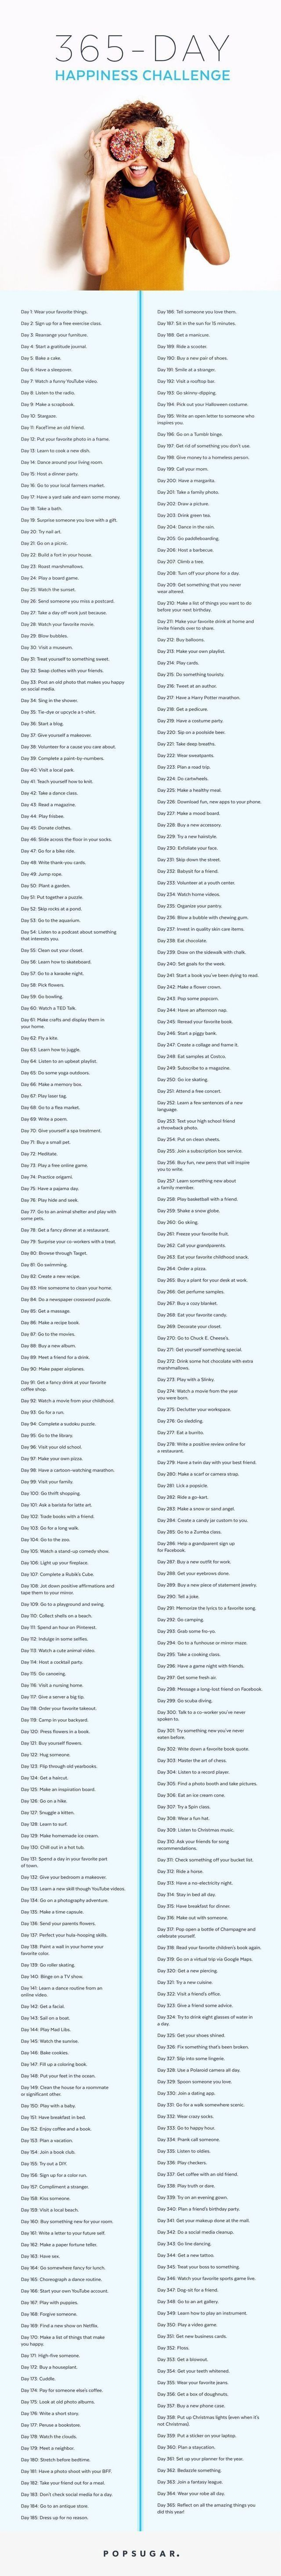 365 days of happiness challenge